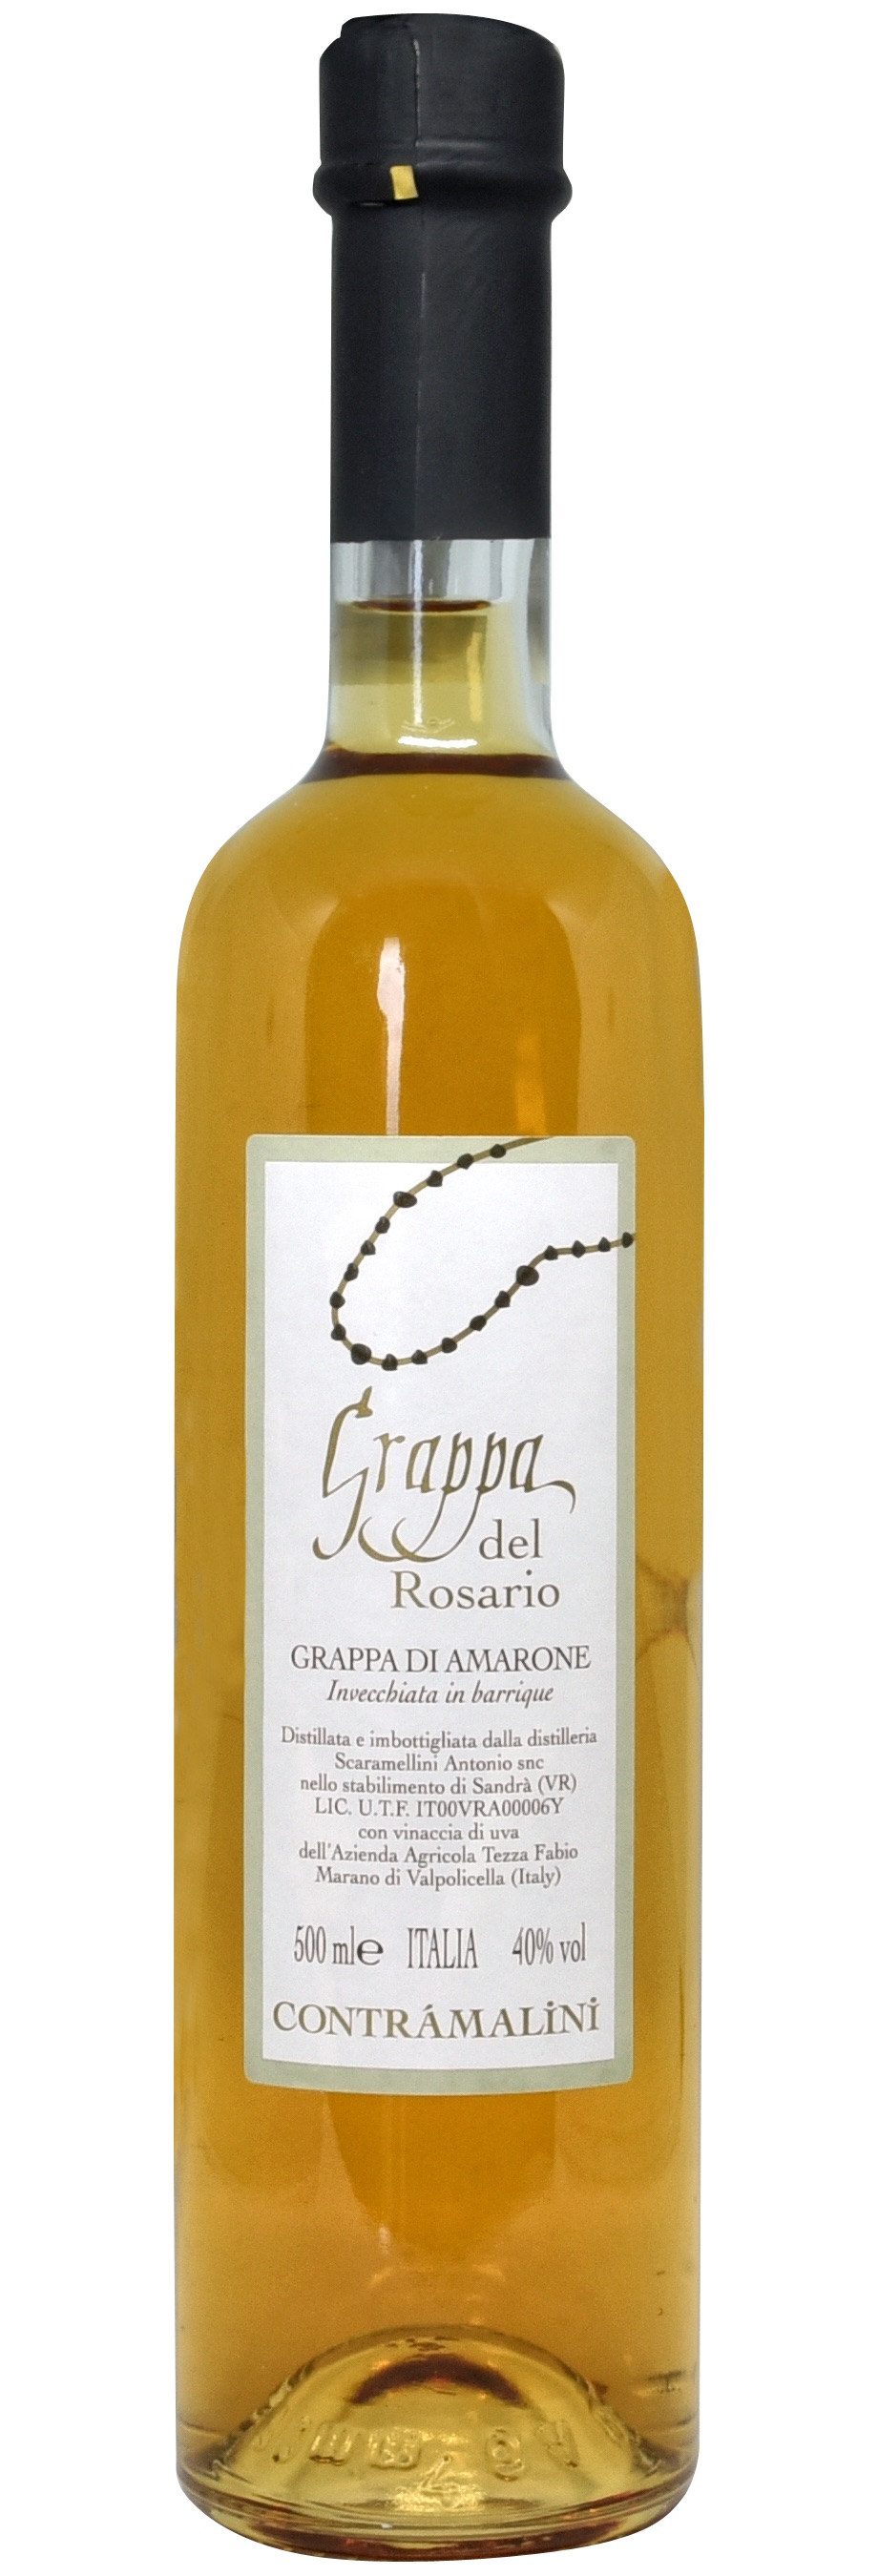 - Grappa del RosarioObtained by distilling the grape pomace of our Amarone della Valpolicella, and aged in barriques.500 ML - 40% vol.